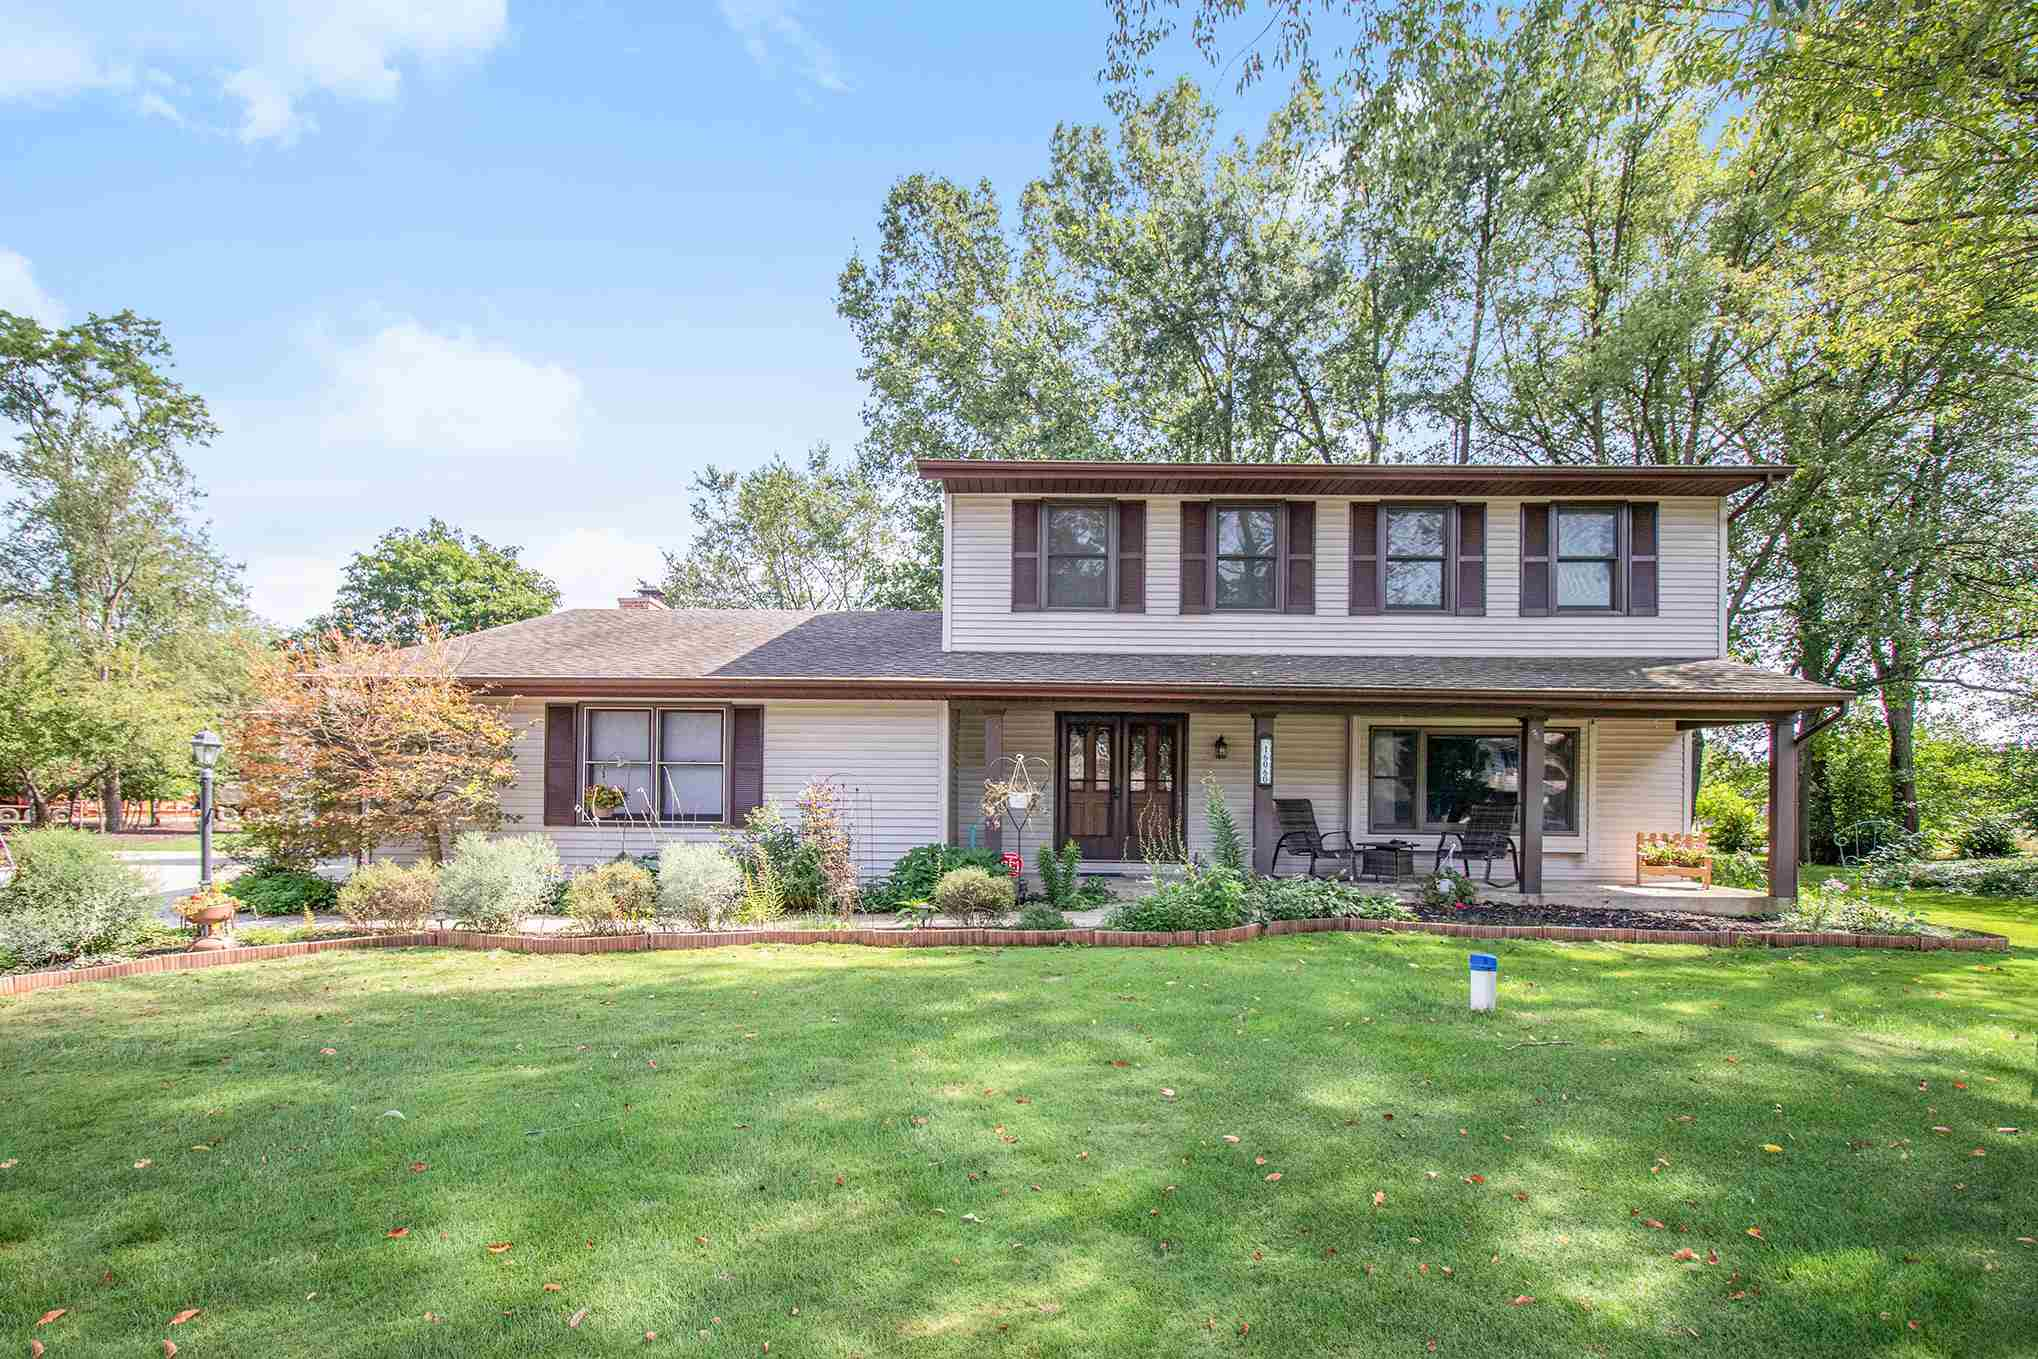 16060 Baywood Granger, IN 46530